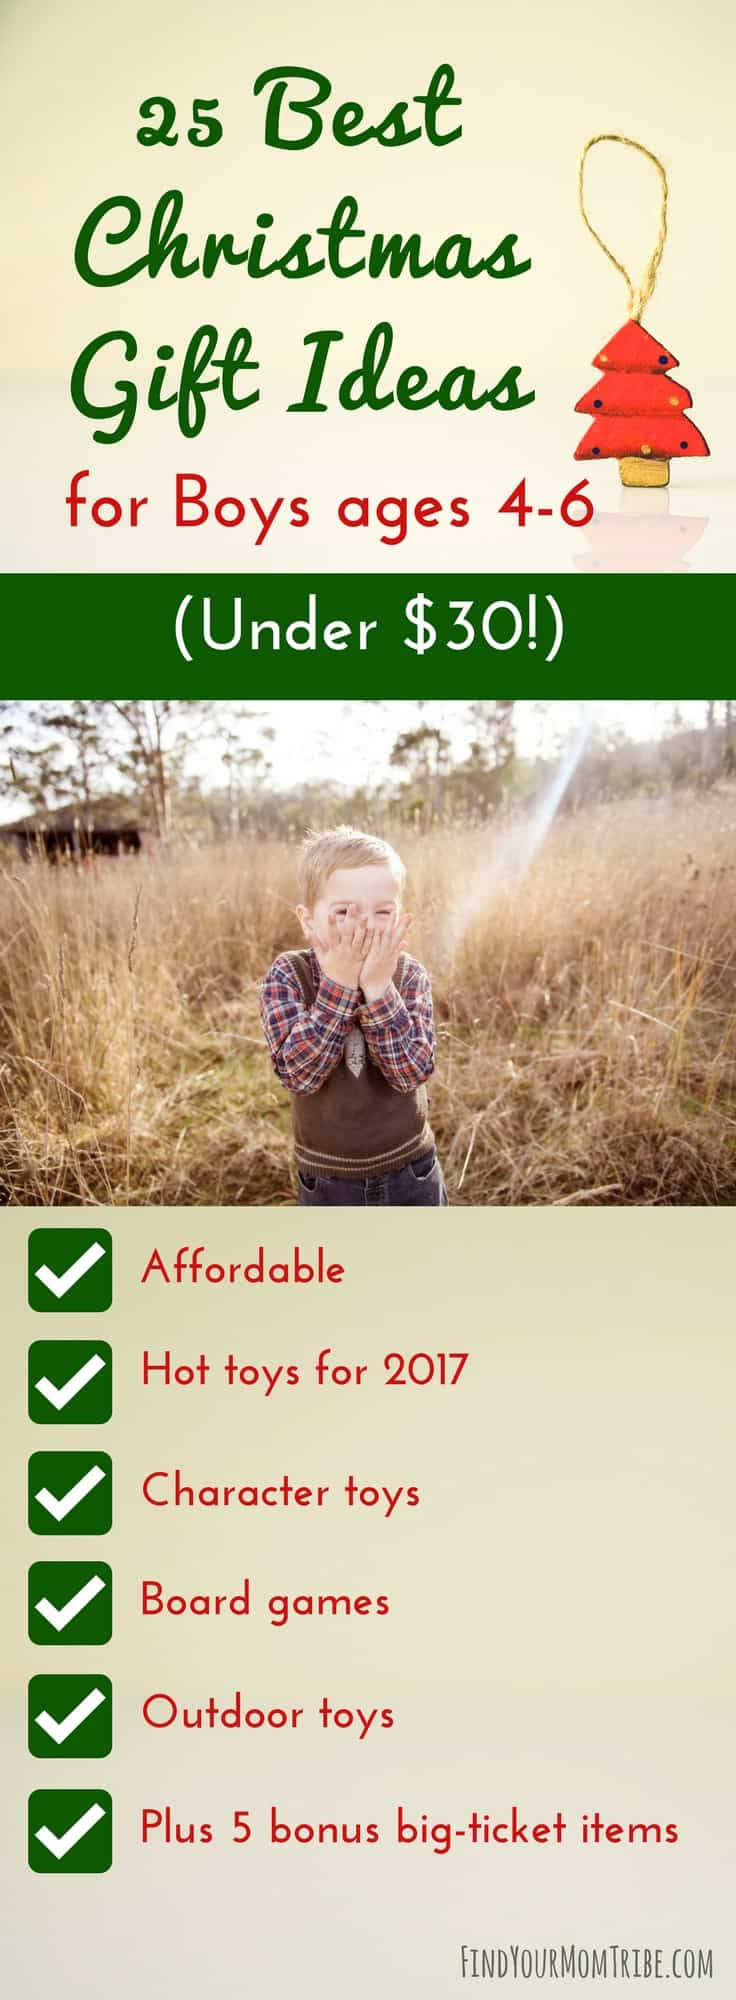 25 Best Christmas Gift Ideas for Boys ages 4-6 (Under $30!) - Find ...